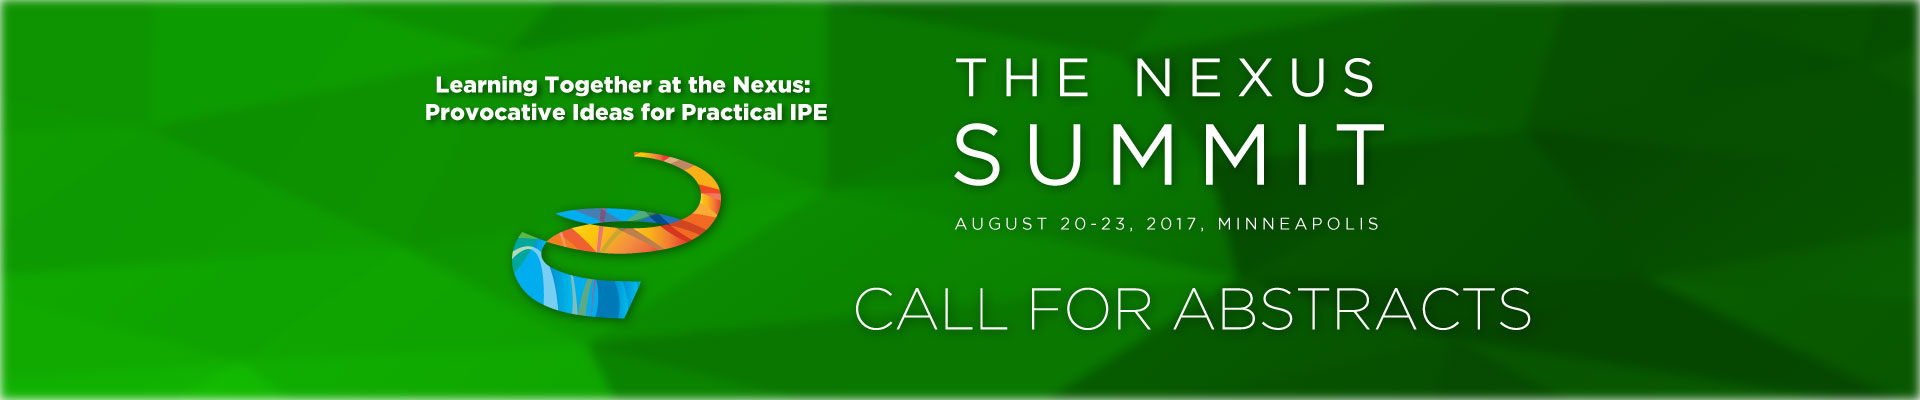 Nexus Summit 2017 Call for Abstracts